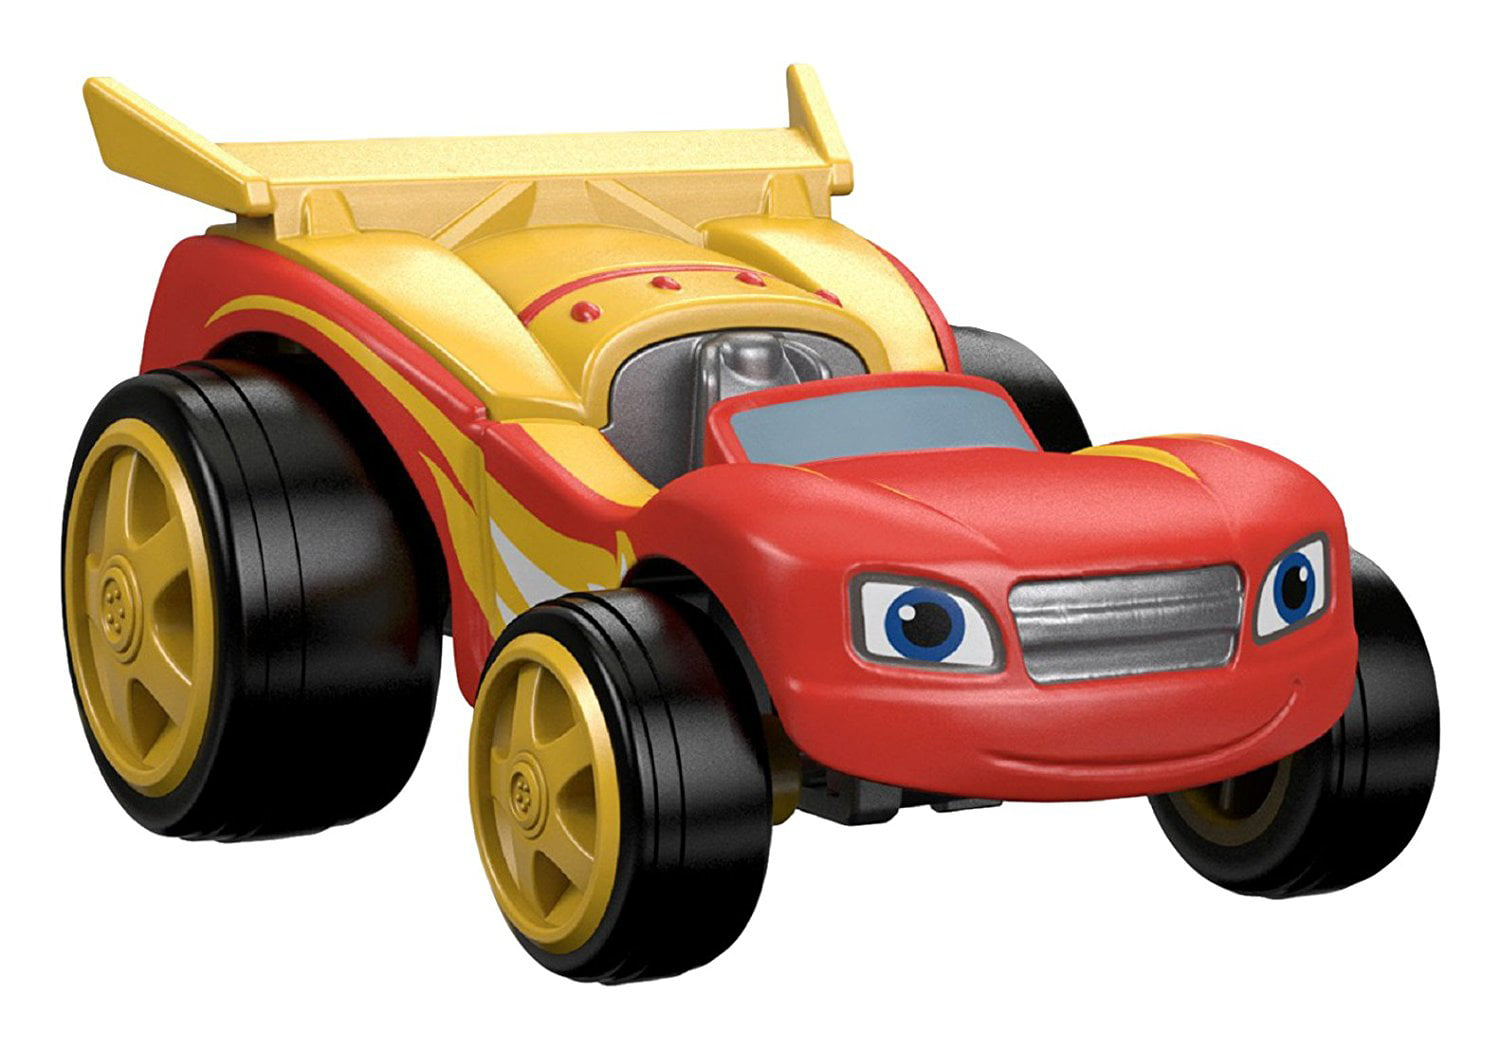 Nickelodeon Blaze and the Monster Machines Race Car Blaze by Generic